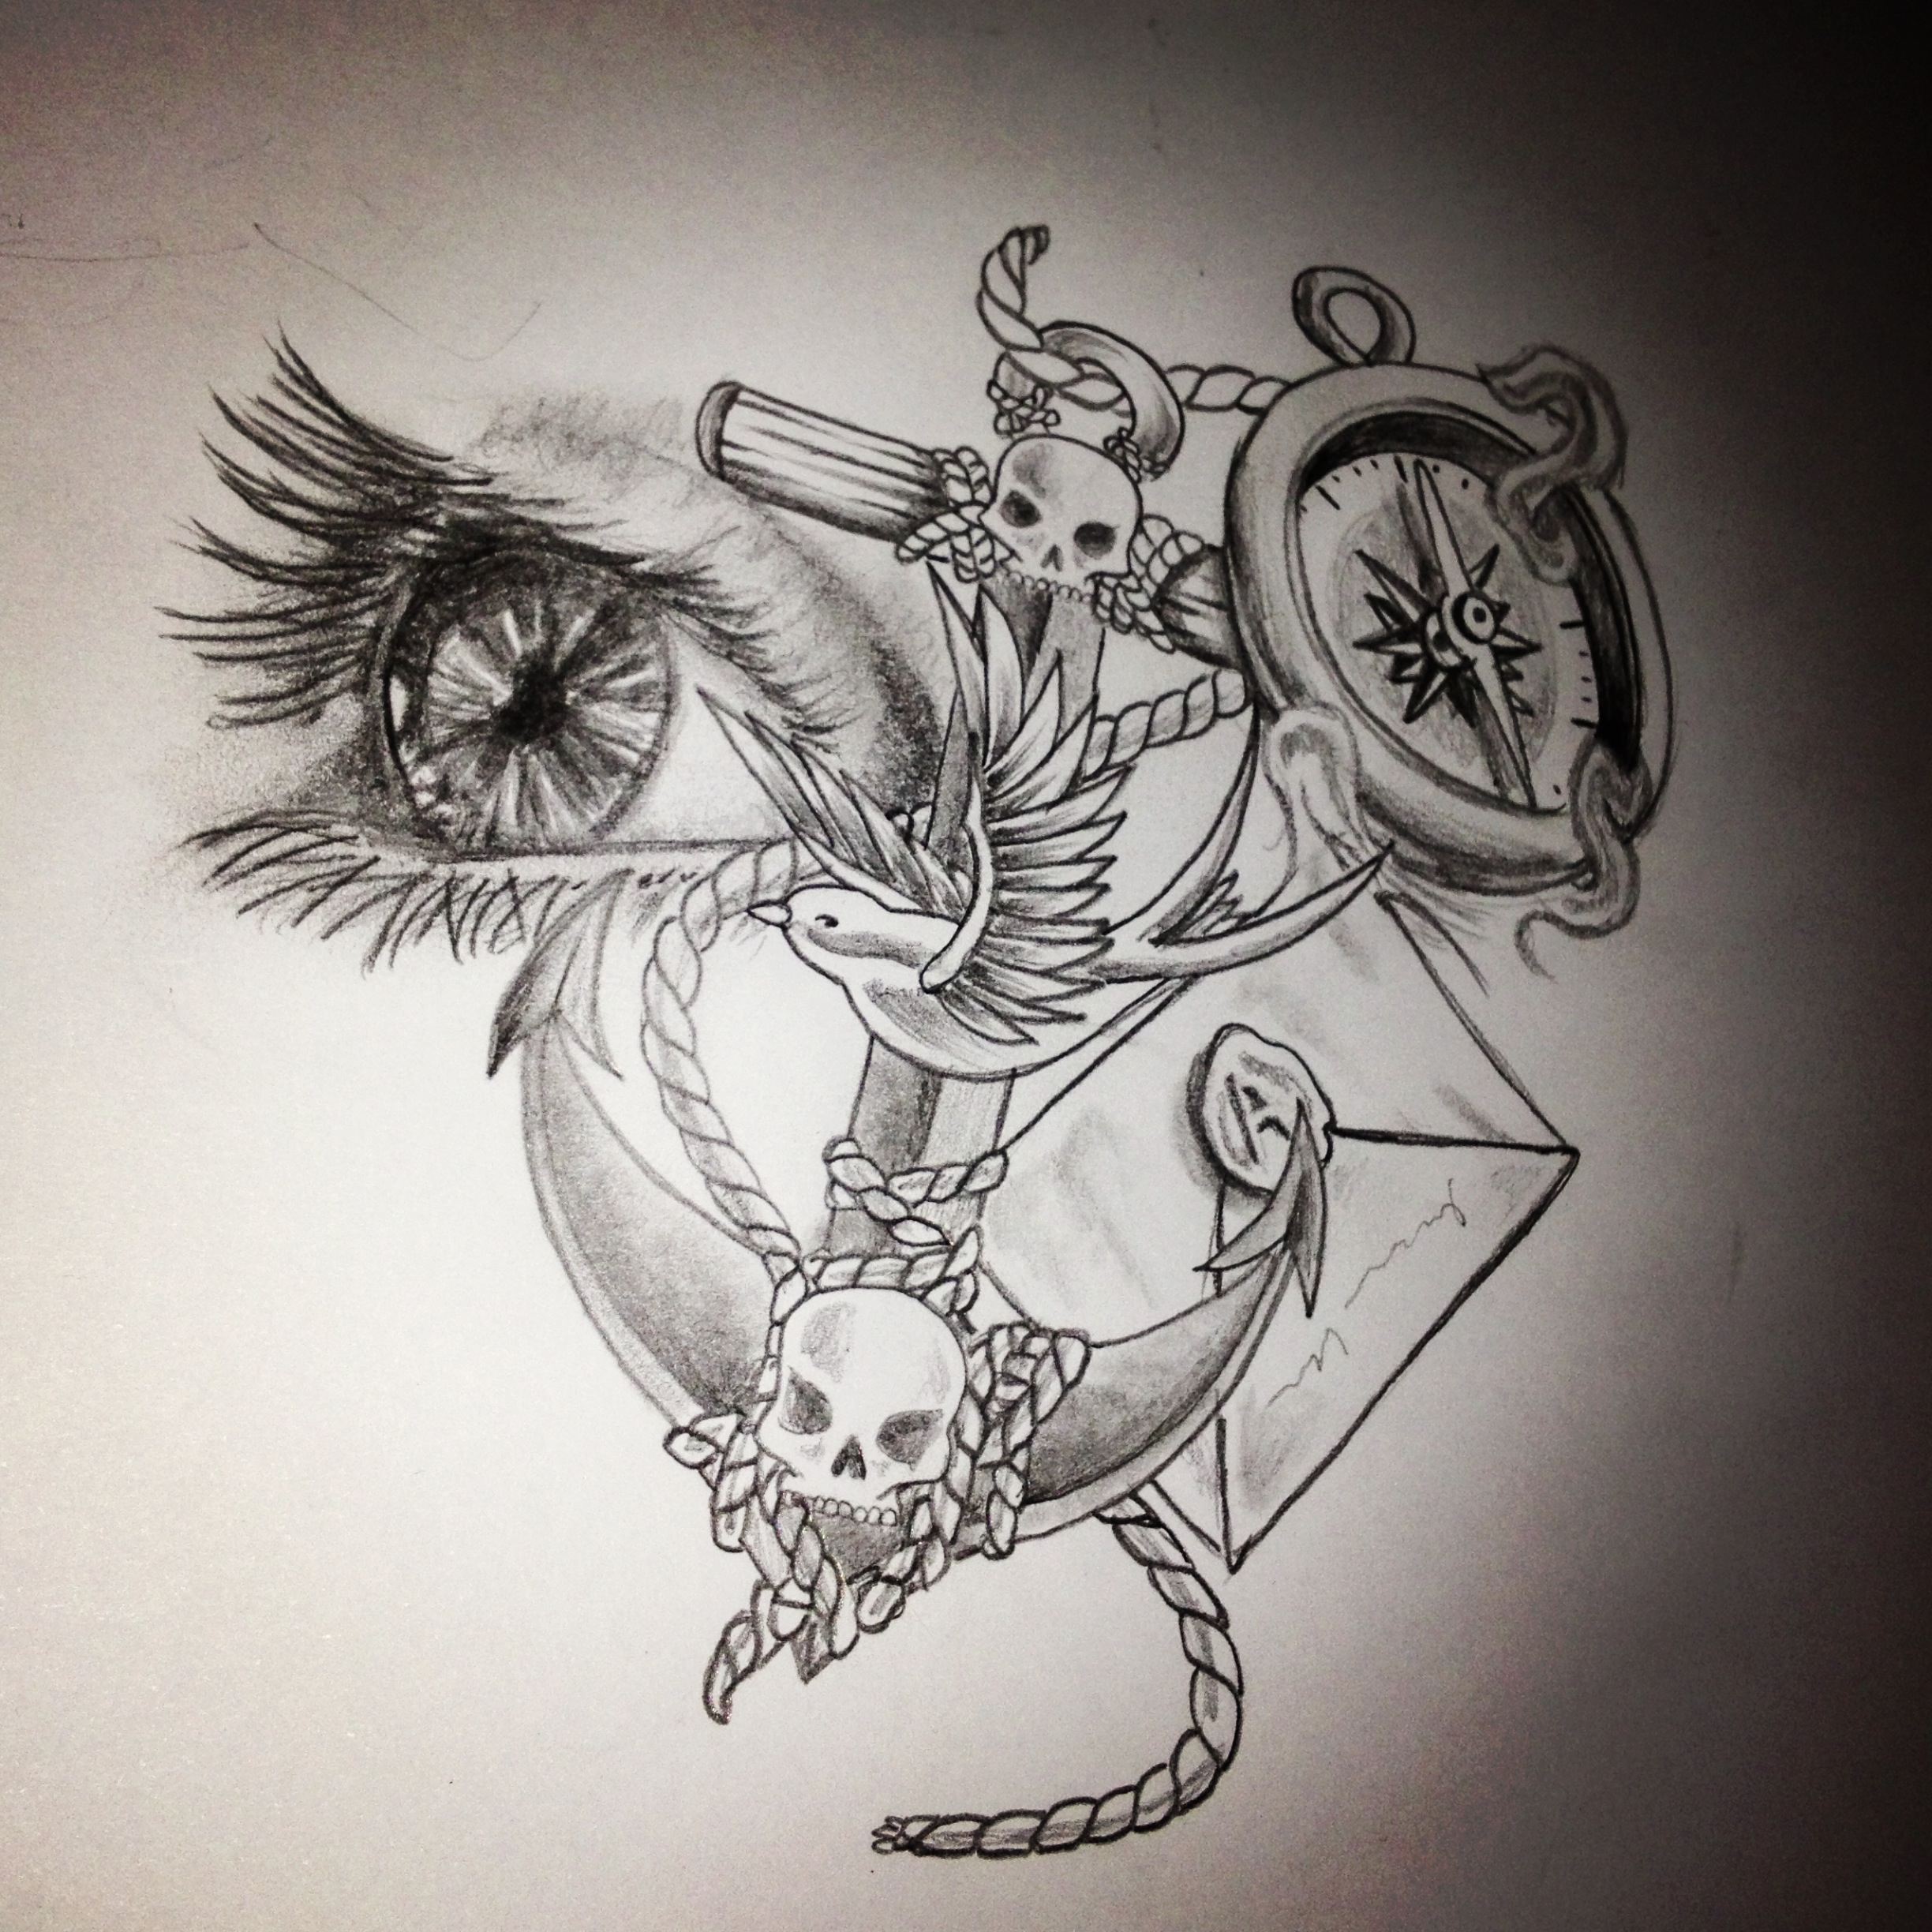 Designs For Tattoos Drawing At GetDrawings.com